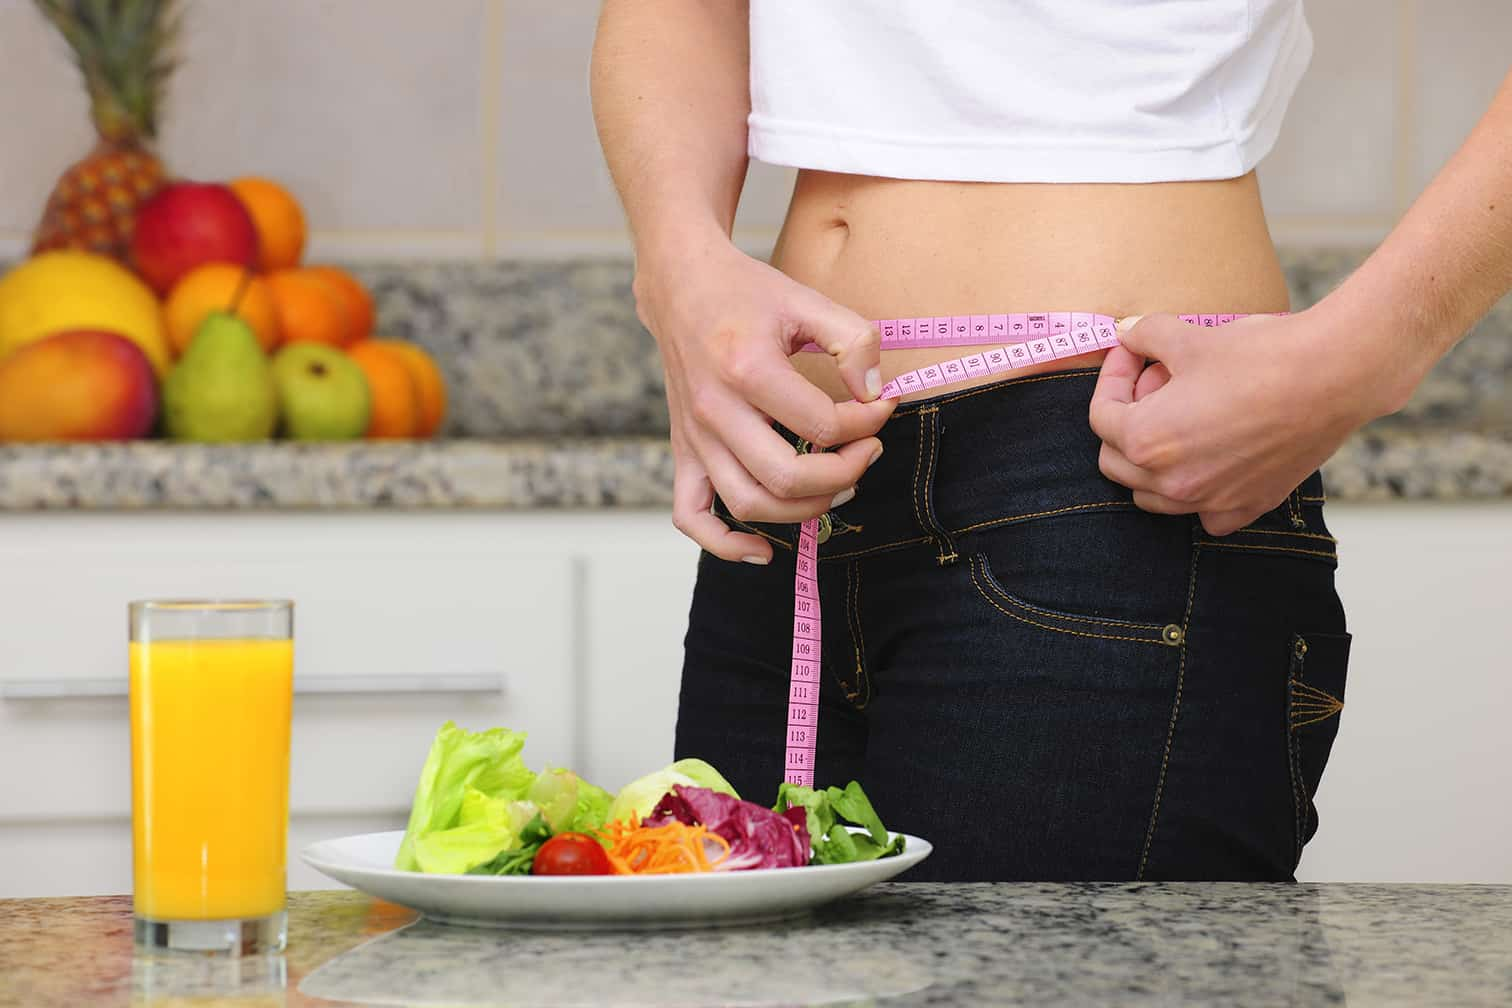 Stop eating to lose weight quickly